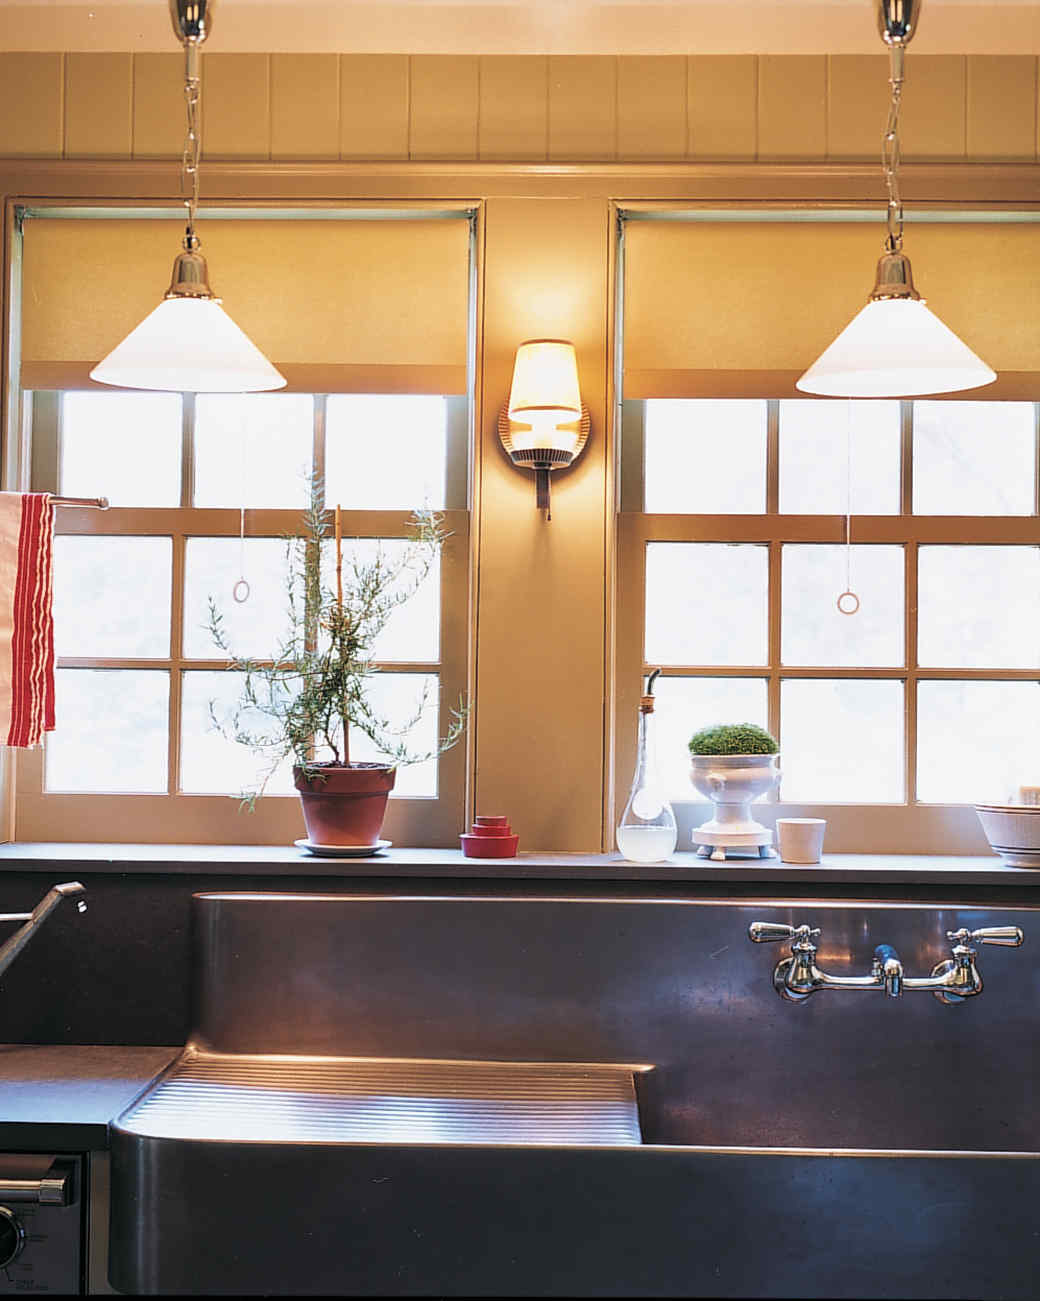 A Salvaged Sink. A Country Kitchen Calls For Upcycled Vintage Accents ...